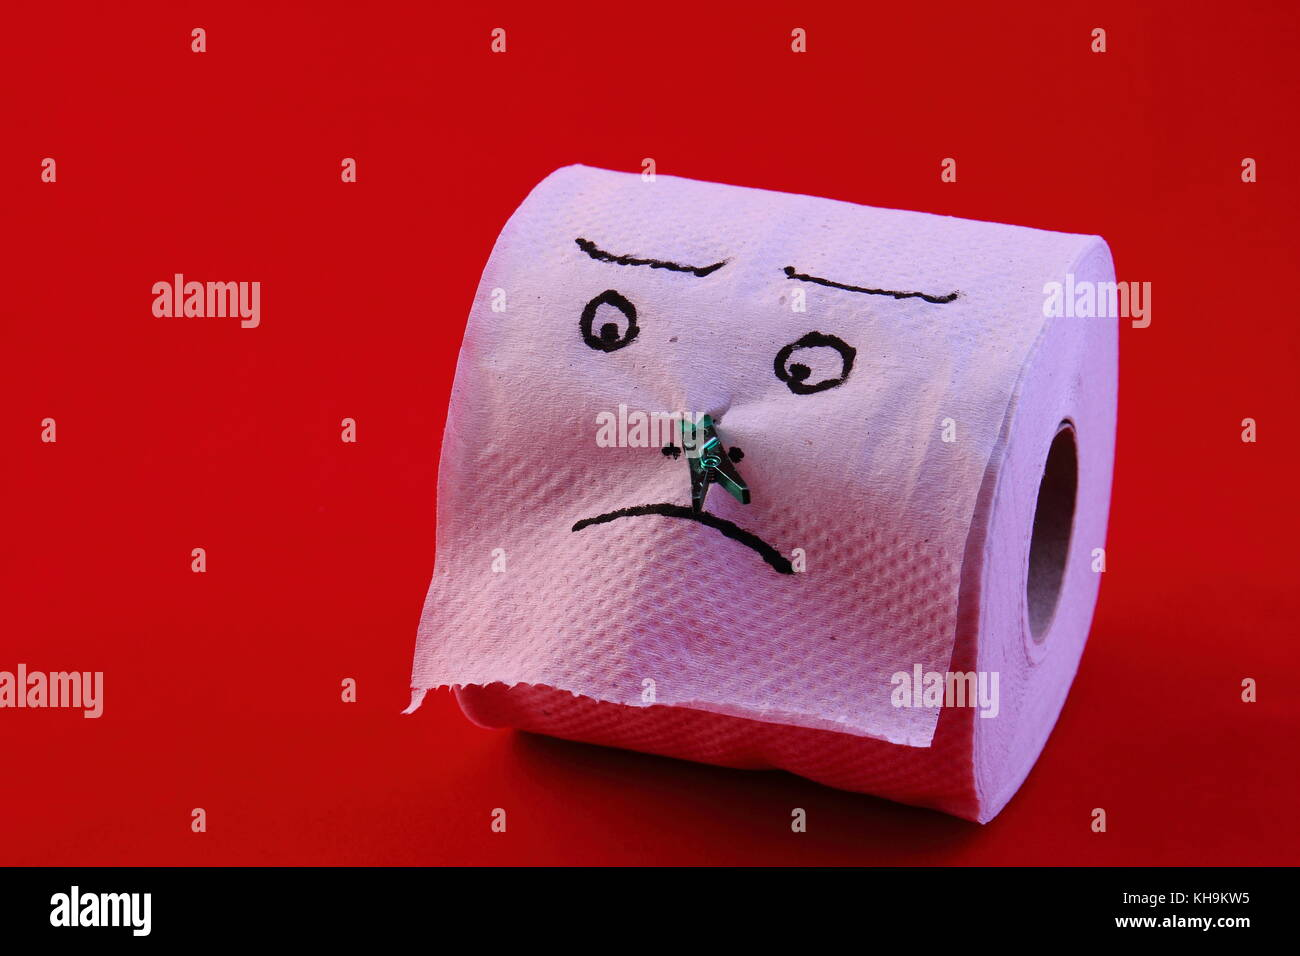 Humor concept - toilet roll with a face drawn on it and a washing peg on the nose in landscape format with copy - Stock Image